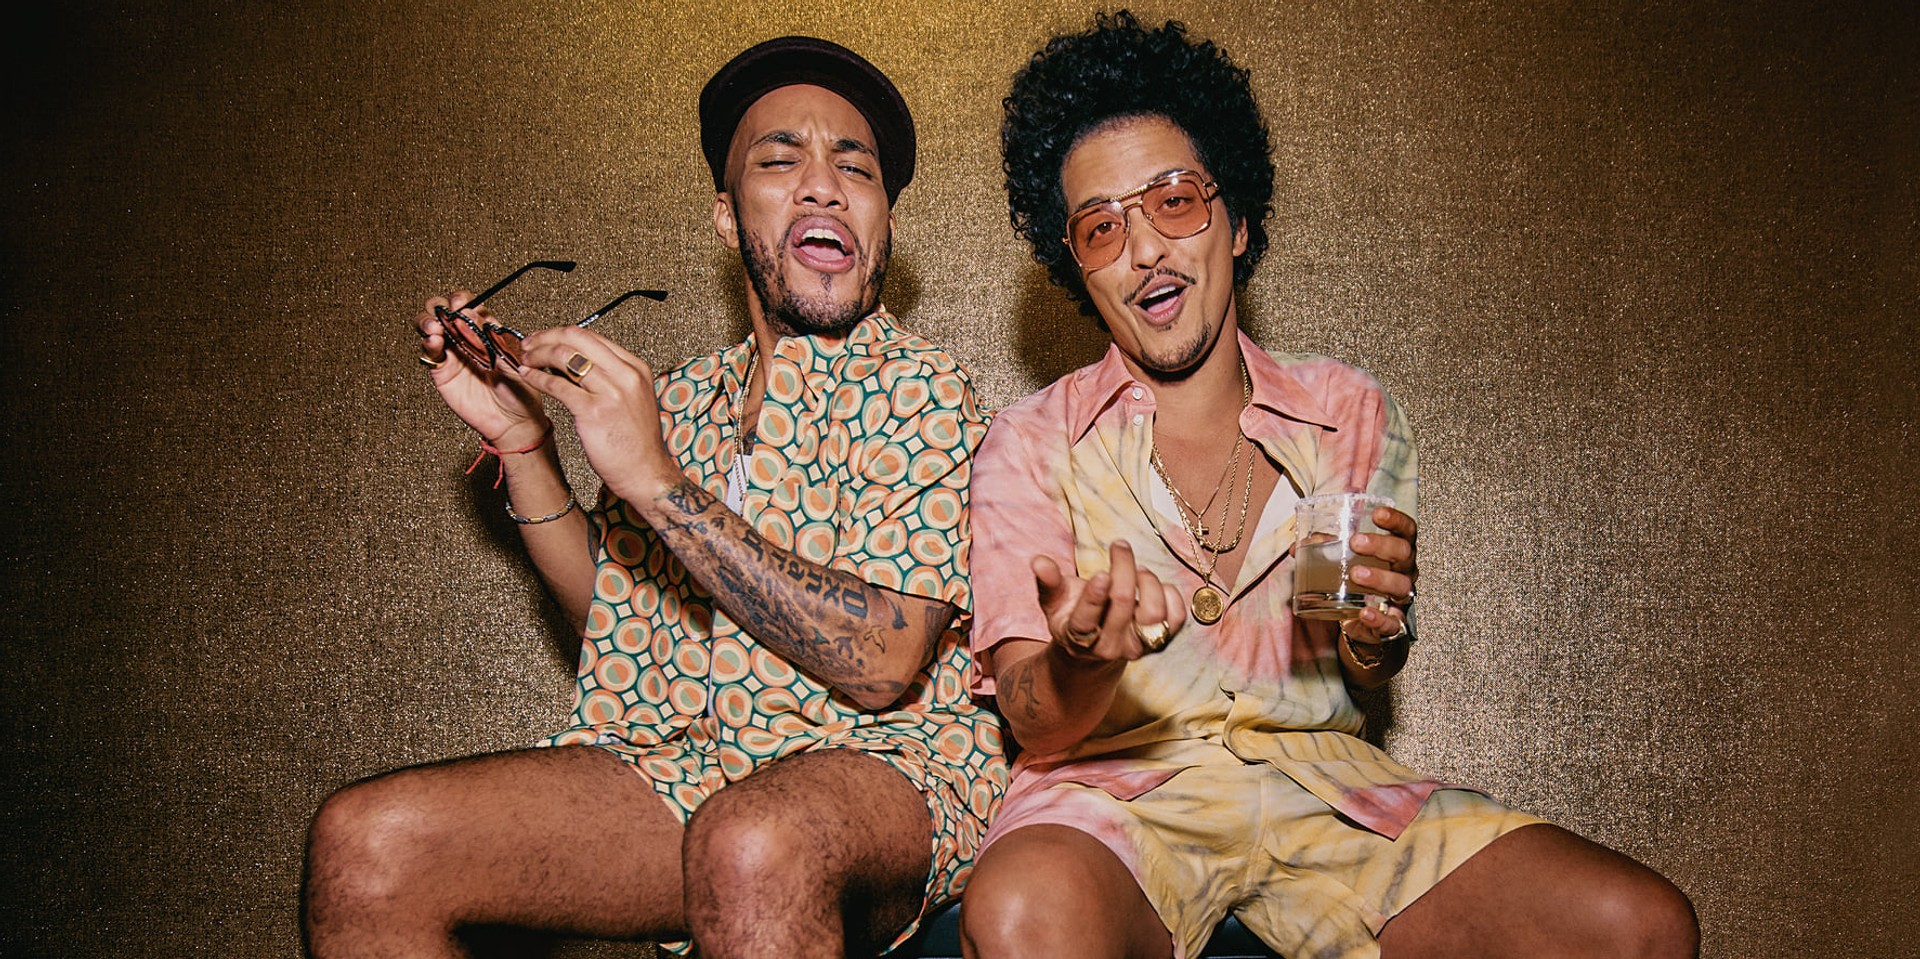 Bruno Mars and Anderson .Paak's Silk Sonic to make live debut at the 63rd GRAMMY Awards